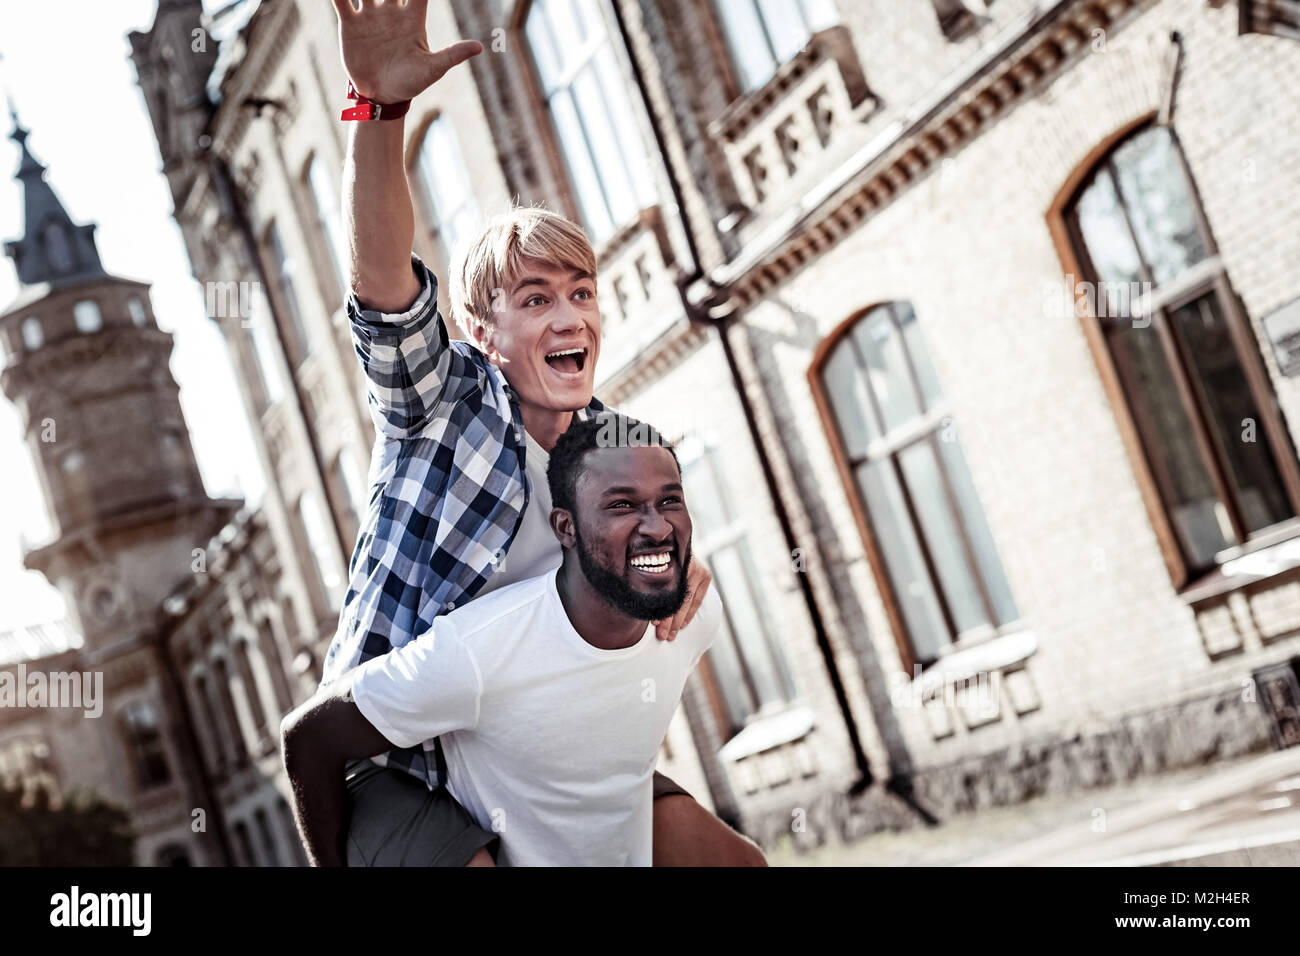 Delighted strong man carrying his friend - Stock Image